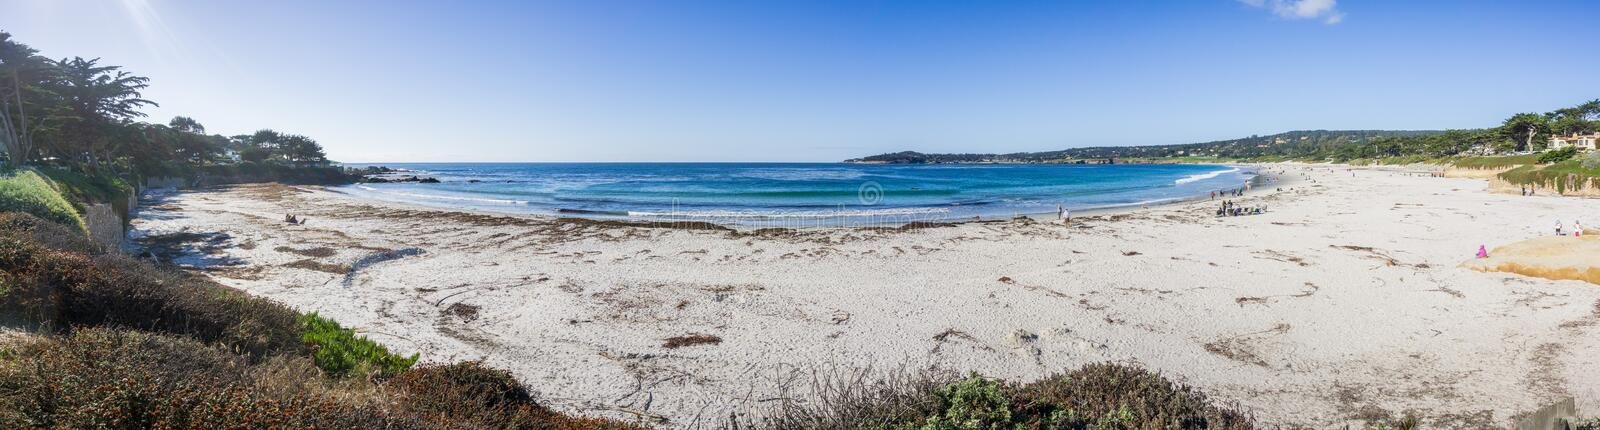 Panoramic view of Carmel State Beach, Carmel-by-the-sea, Monterey Peninsula, California royalty free stock photo